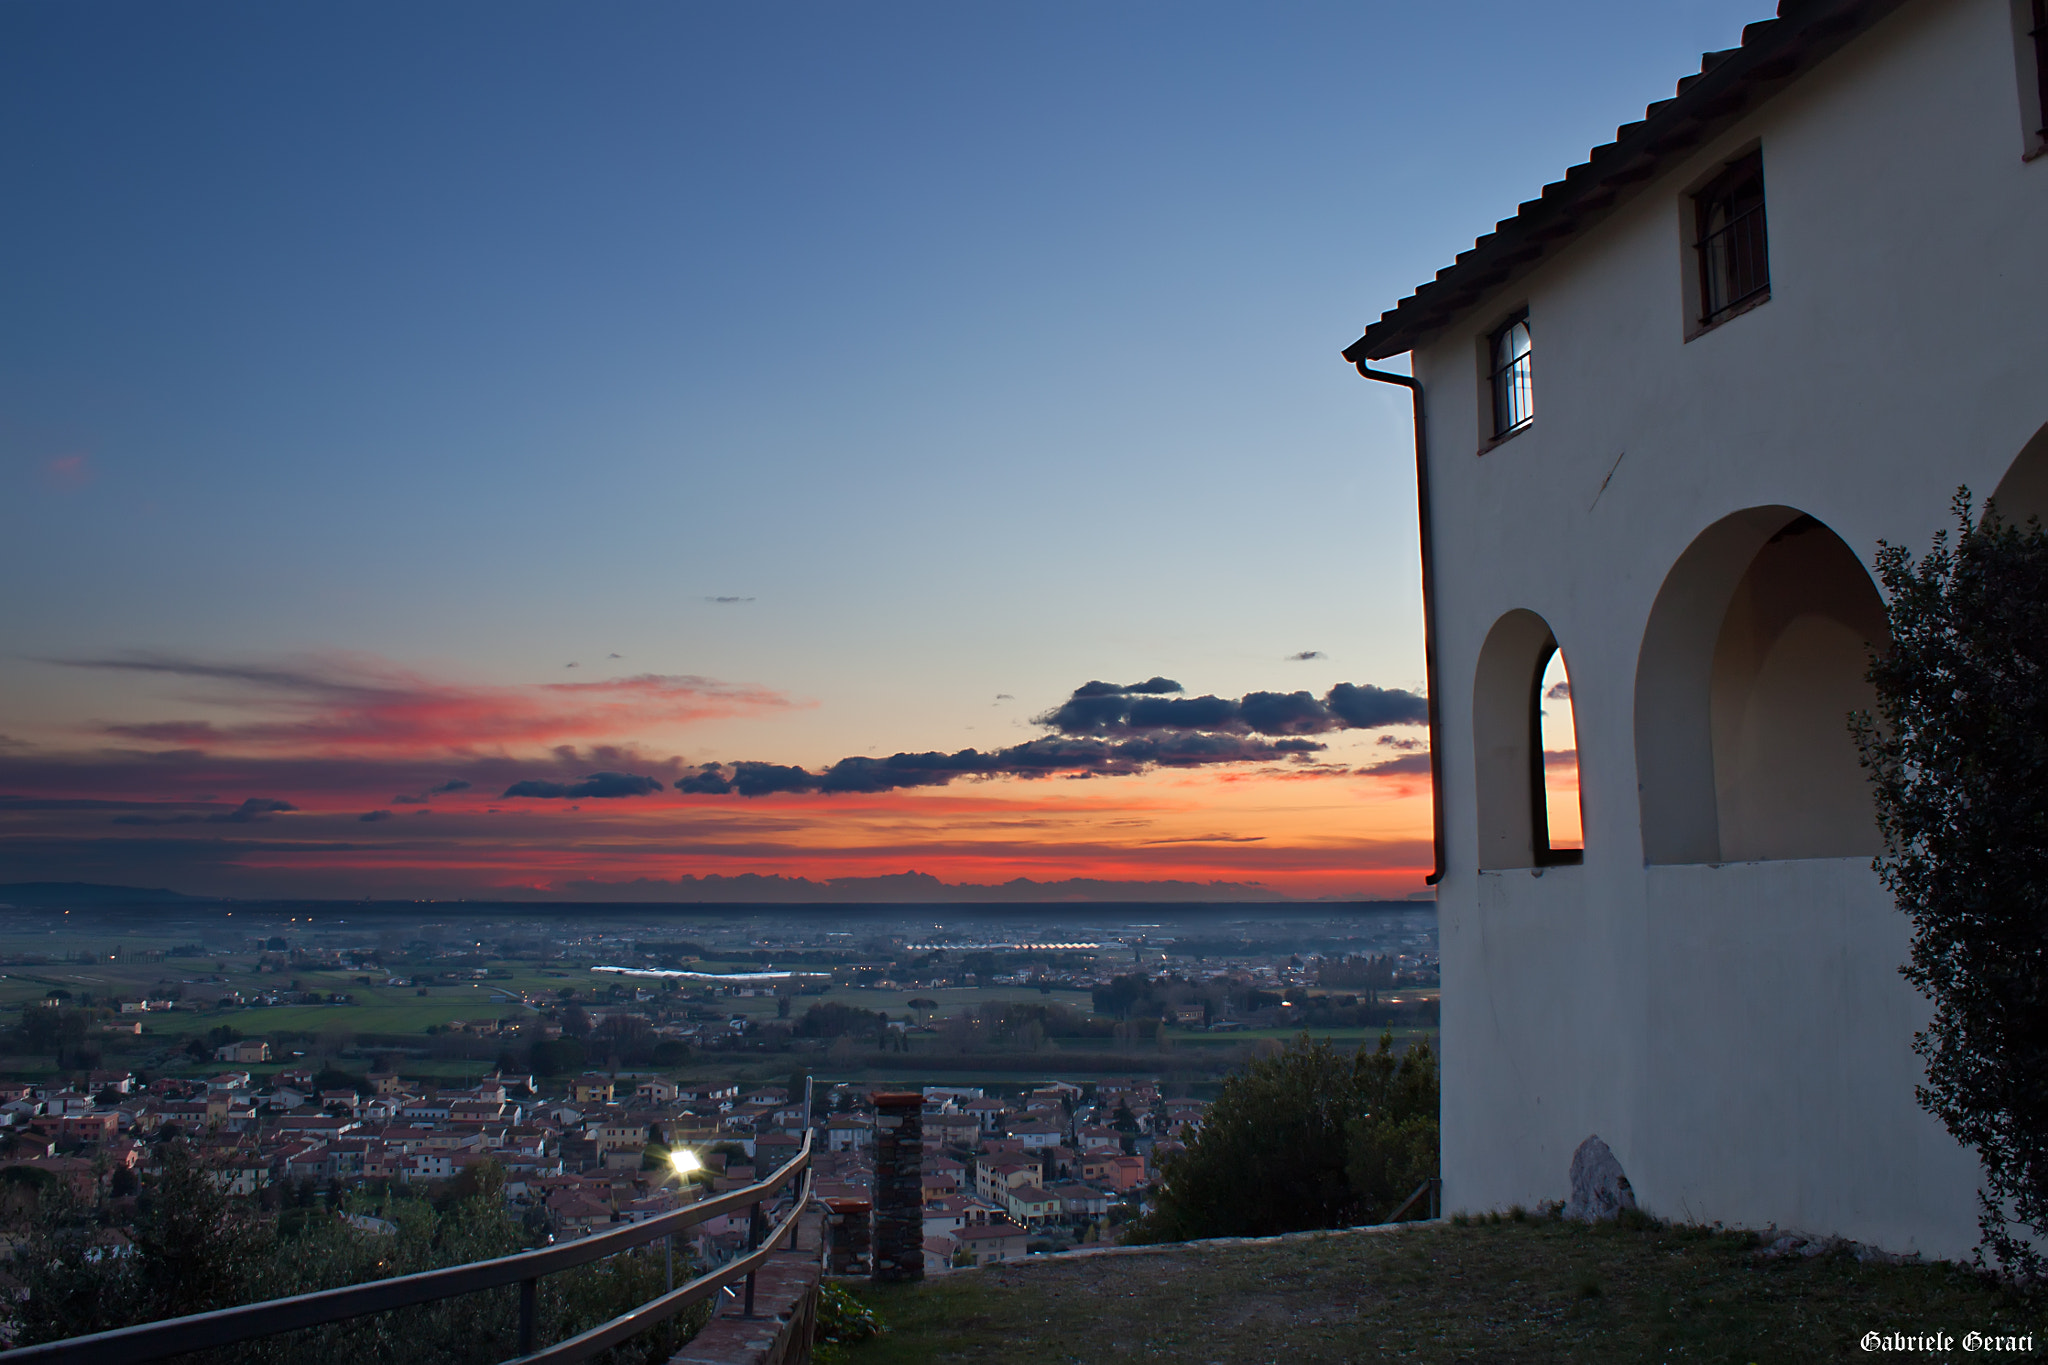 Photograph The Castle by Gabriele Geraci on 500px